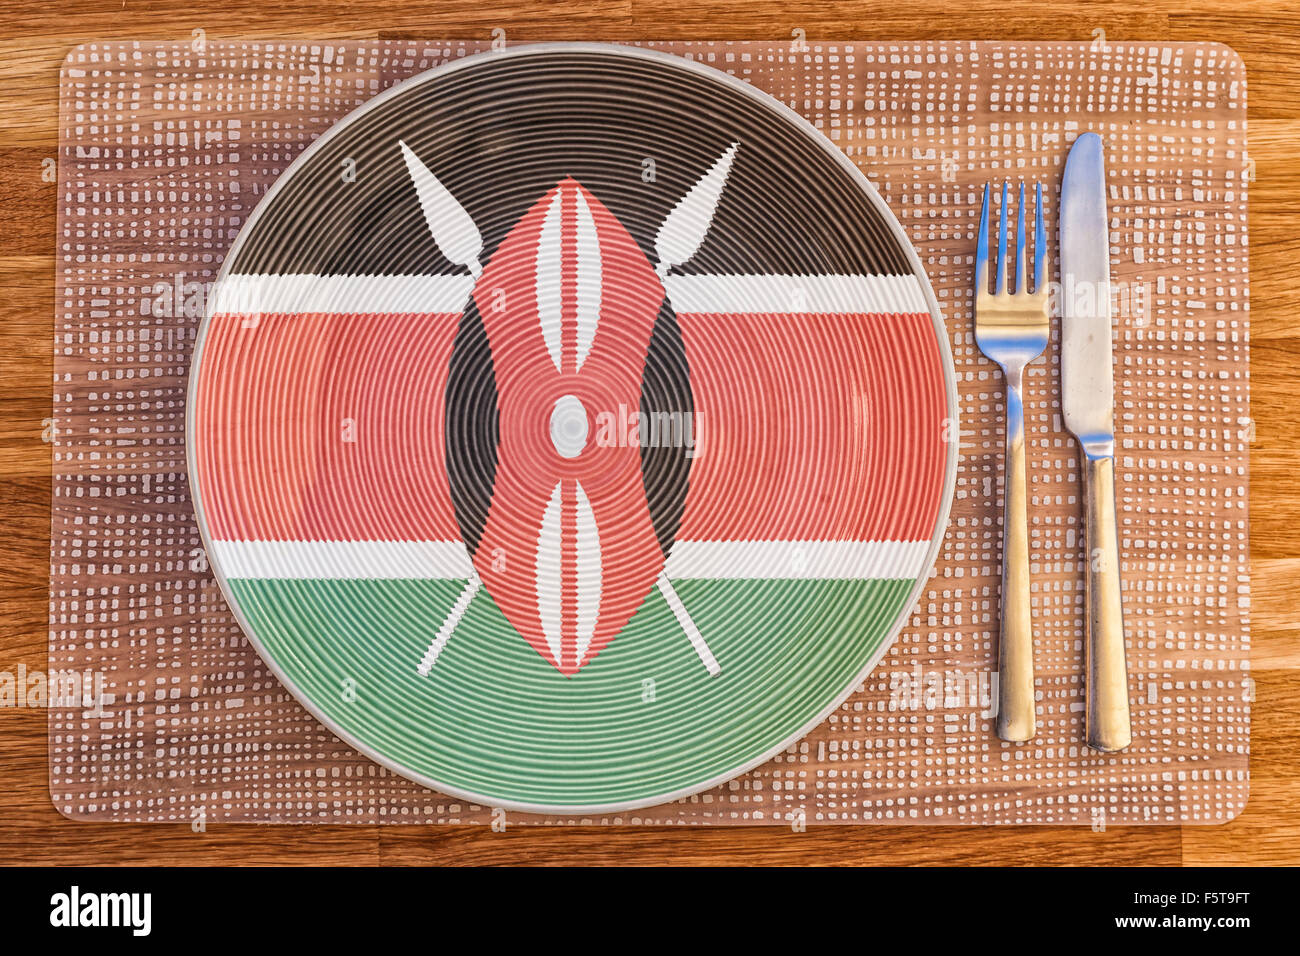 Dinner plate with the flag of Kenya on it for your international food and drink concepts. Stock Photo